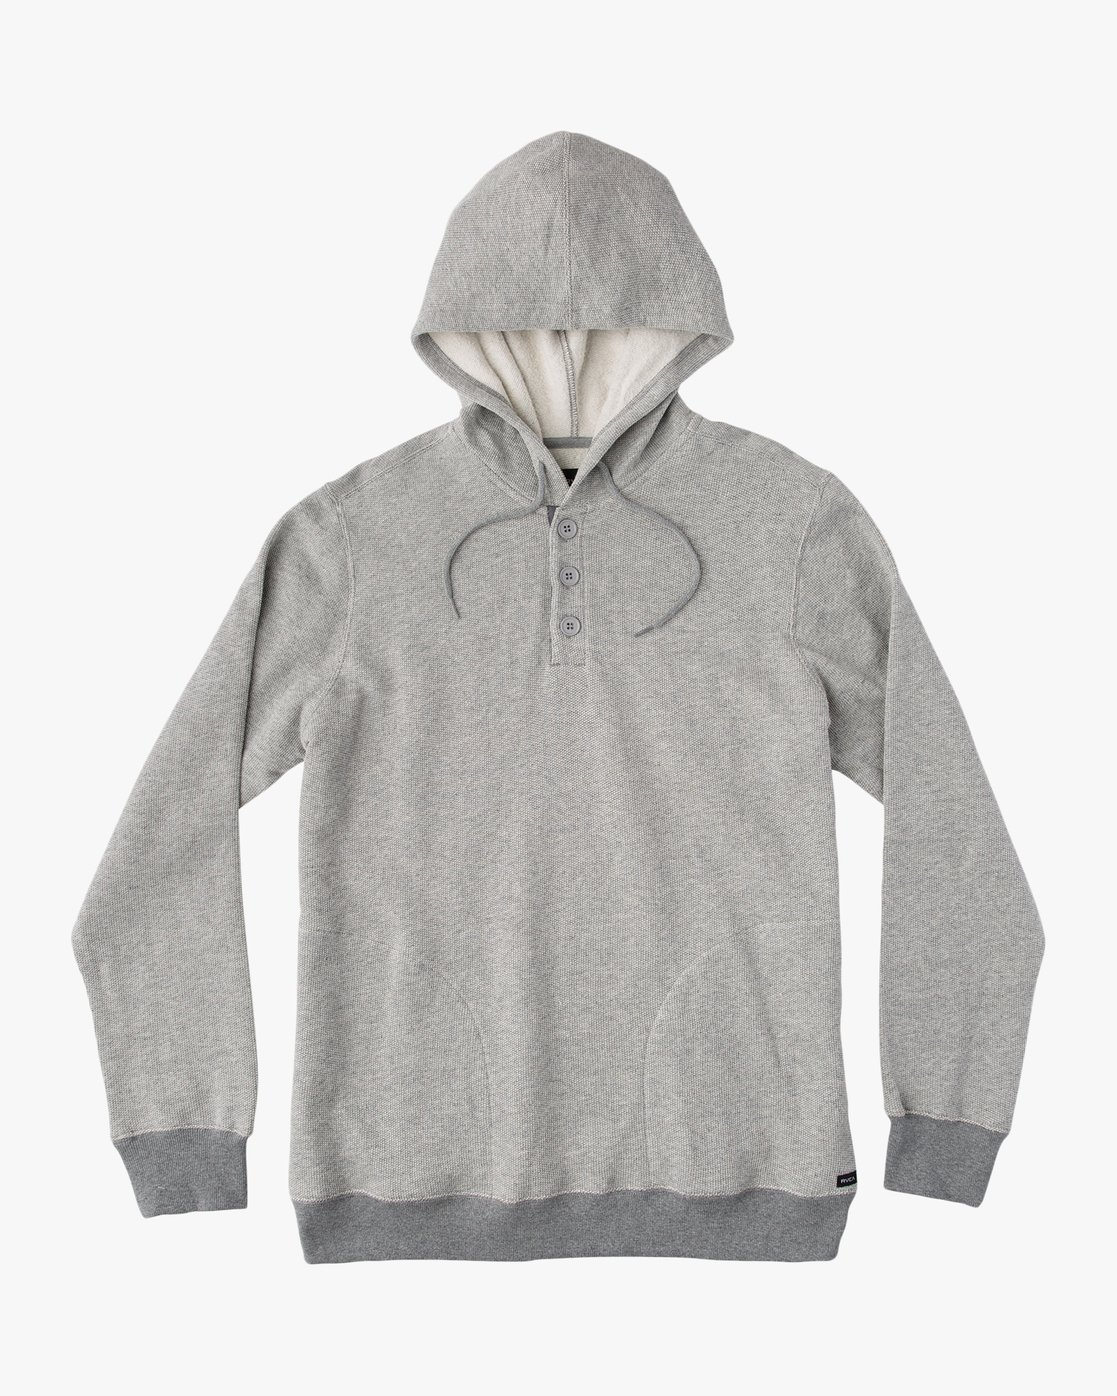 3 Hoodies Gr.s Men's Clothing Clothing, Shoes & Accessories